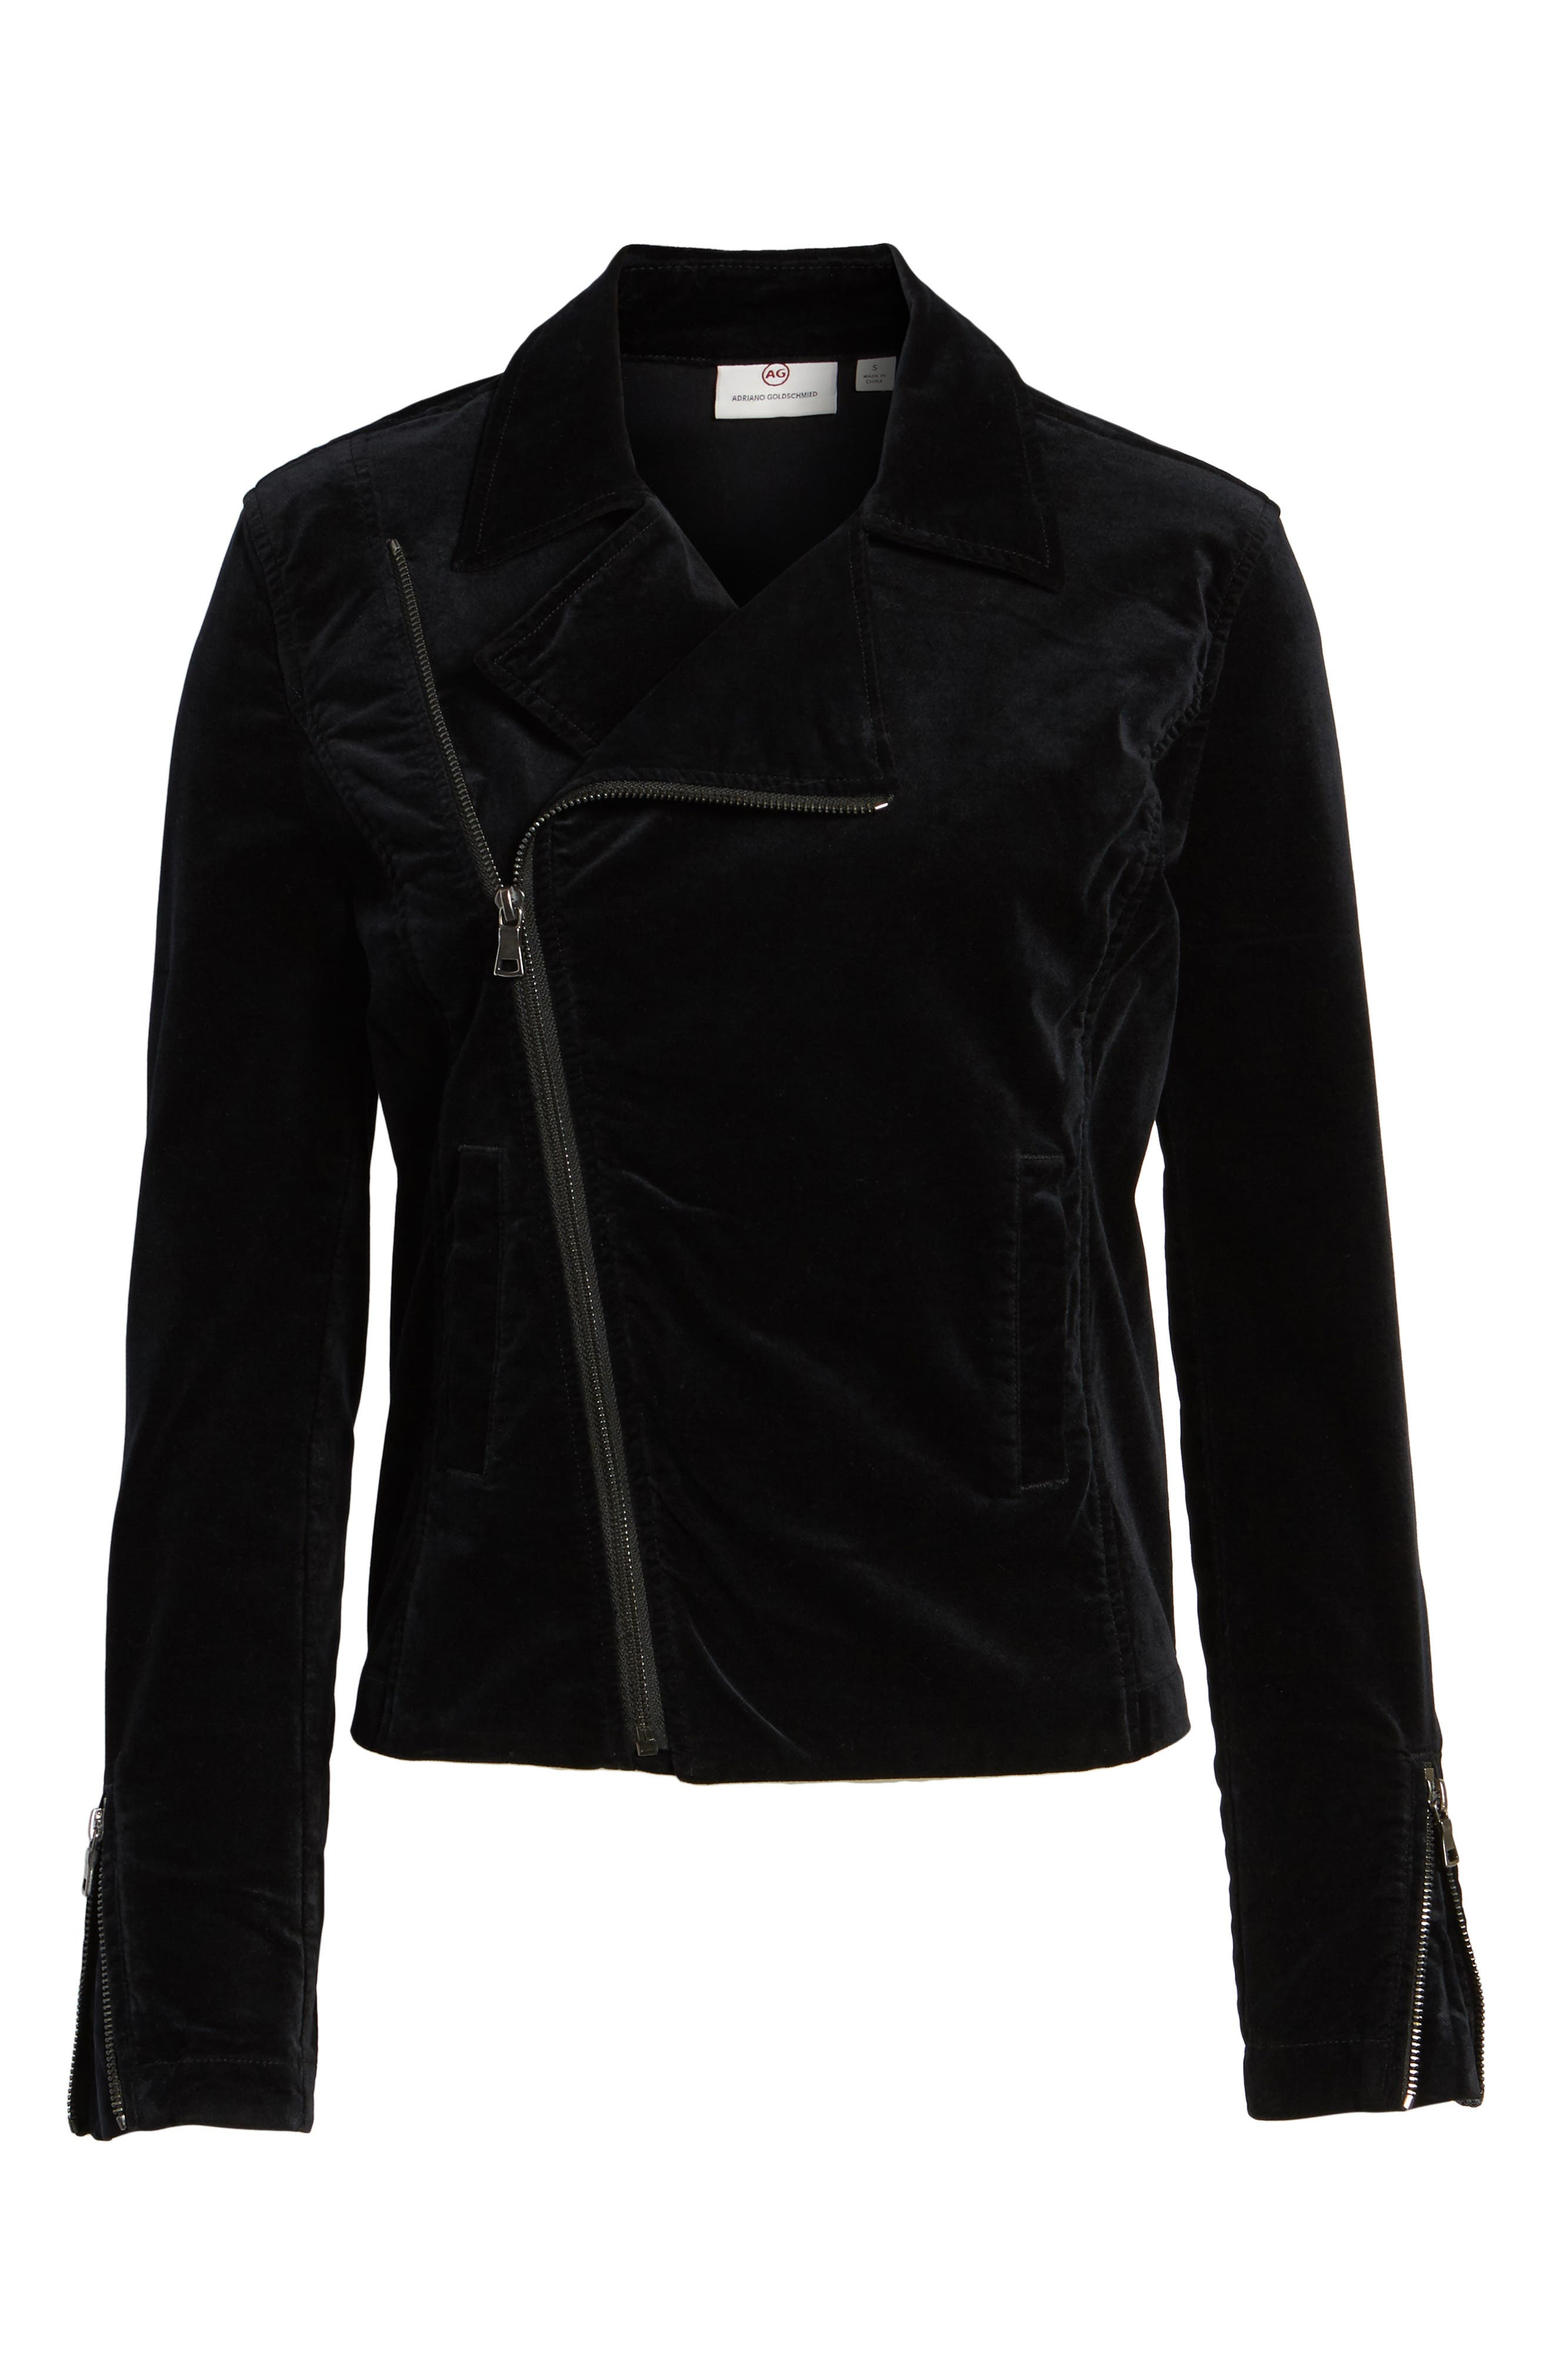 Quincy Velvet Biker Jacket,                             Alternate thumbnail 5, color,                             001